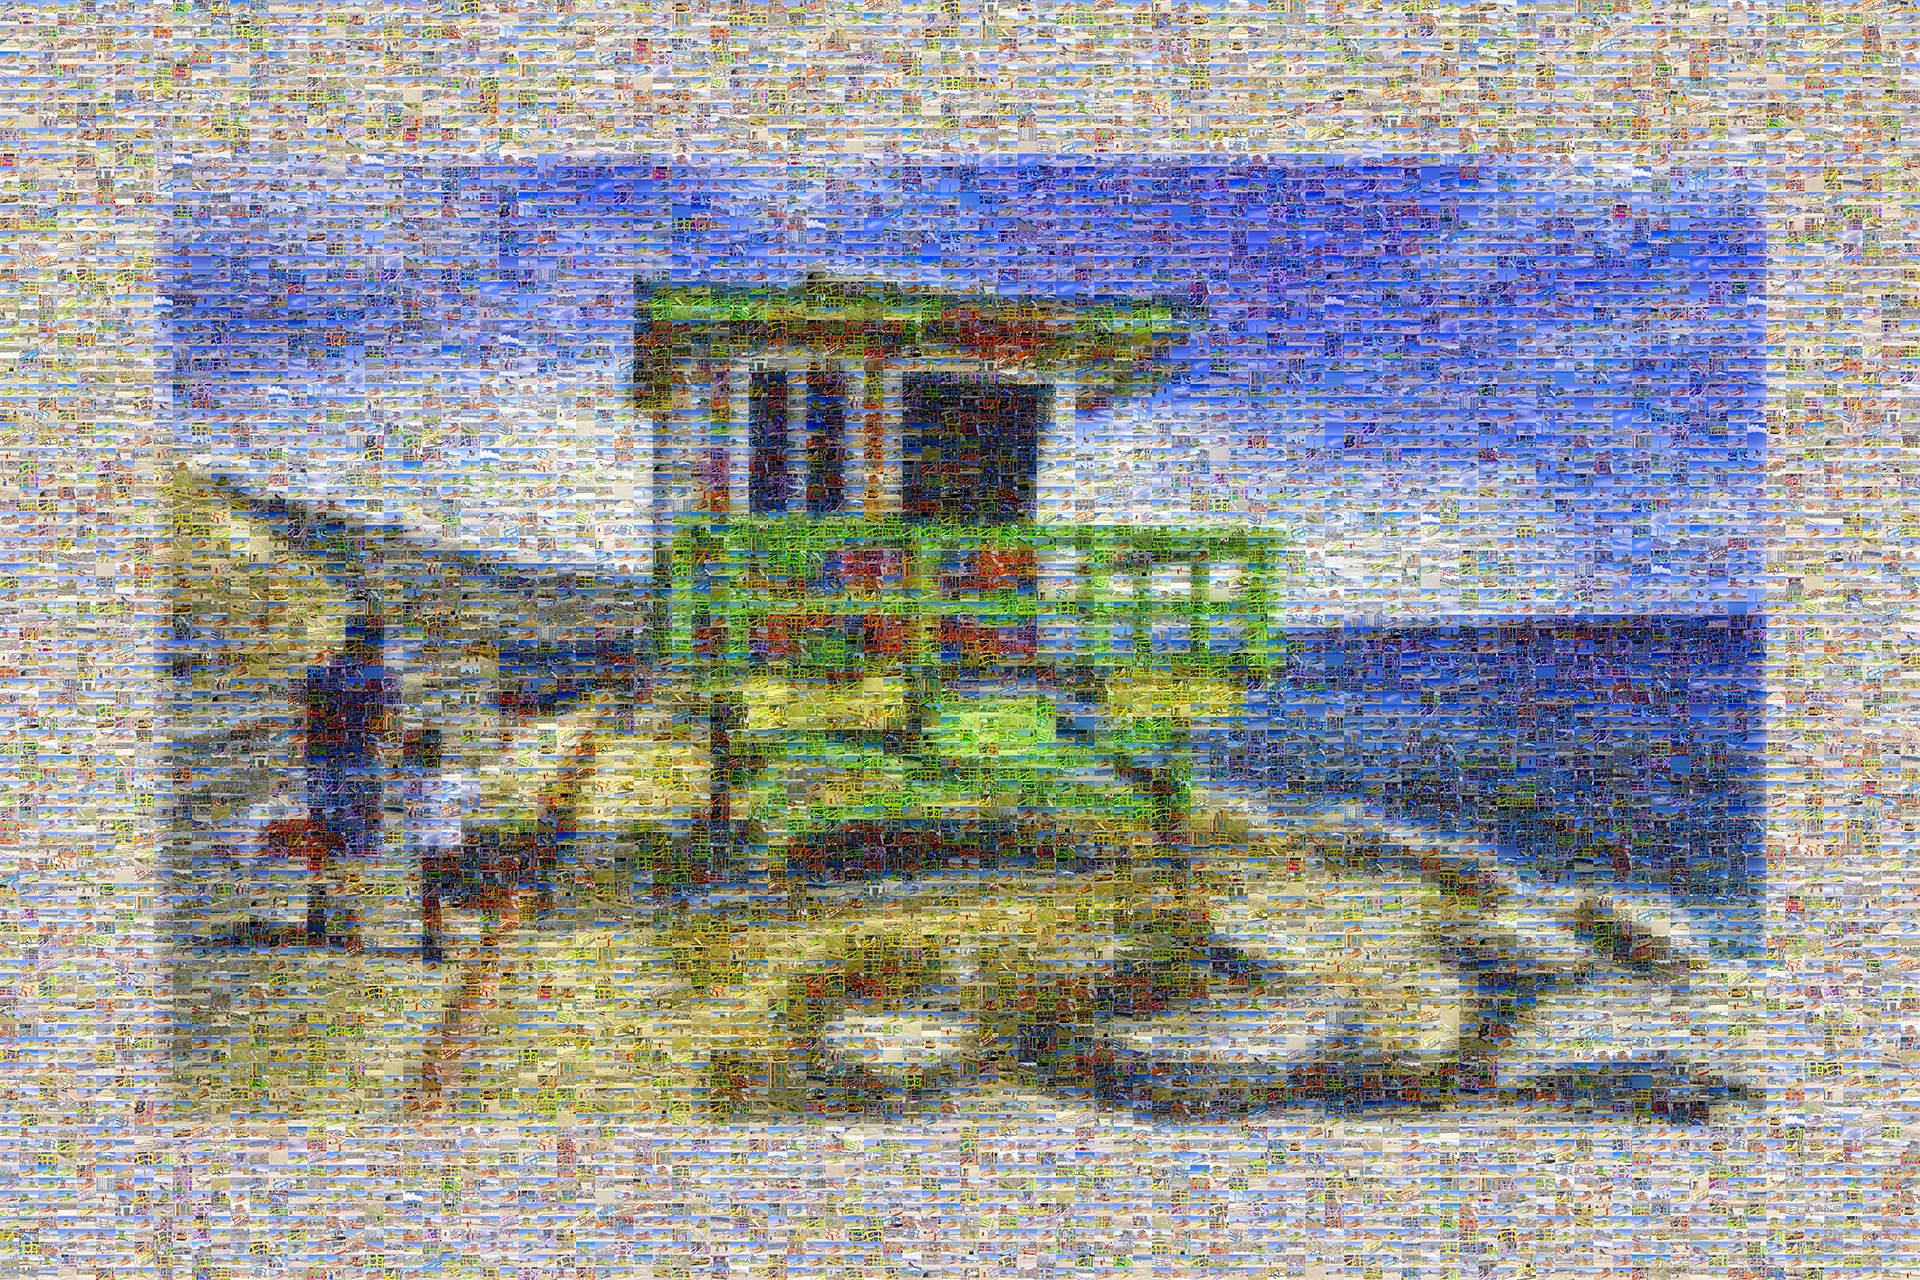 photo mosaic created using 682 images of vibrantly colored lifeguard stands